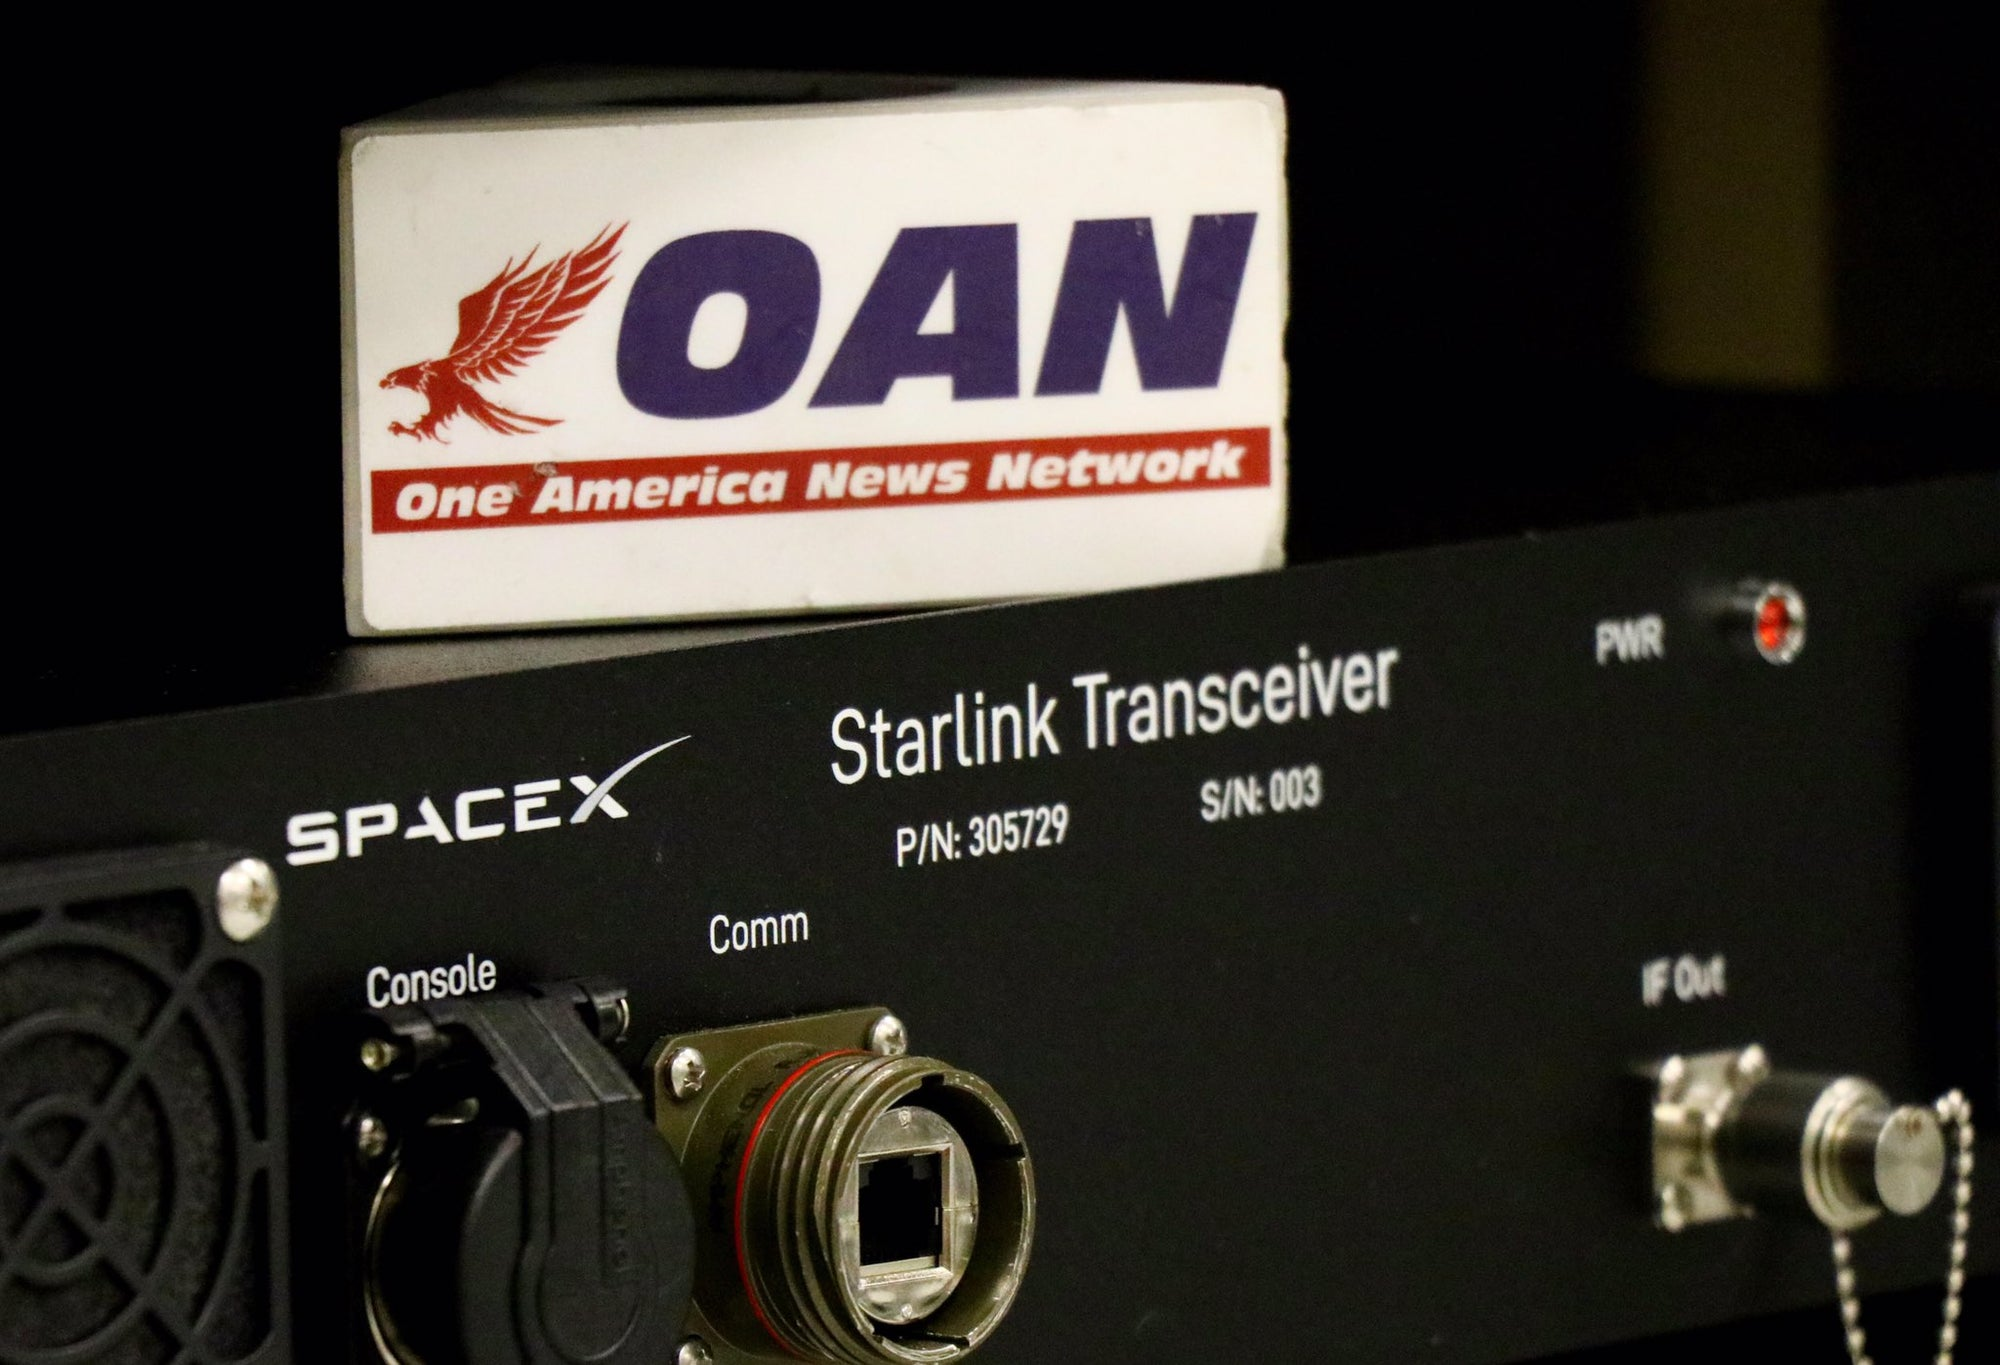 SpaceX's Starlink Transceiver revealed in a photograph